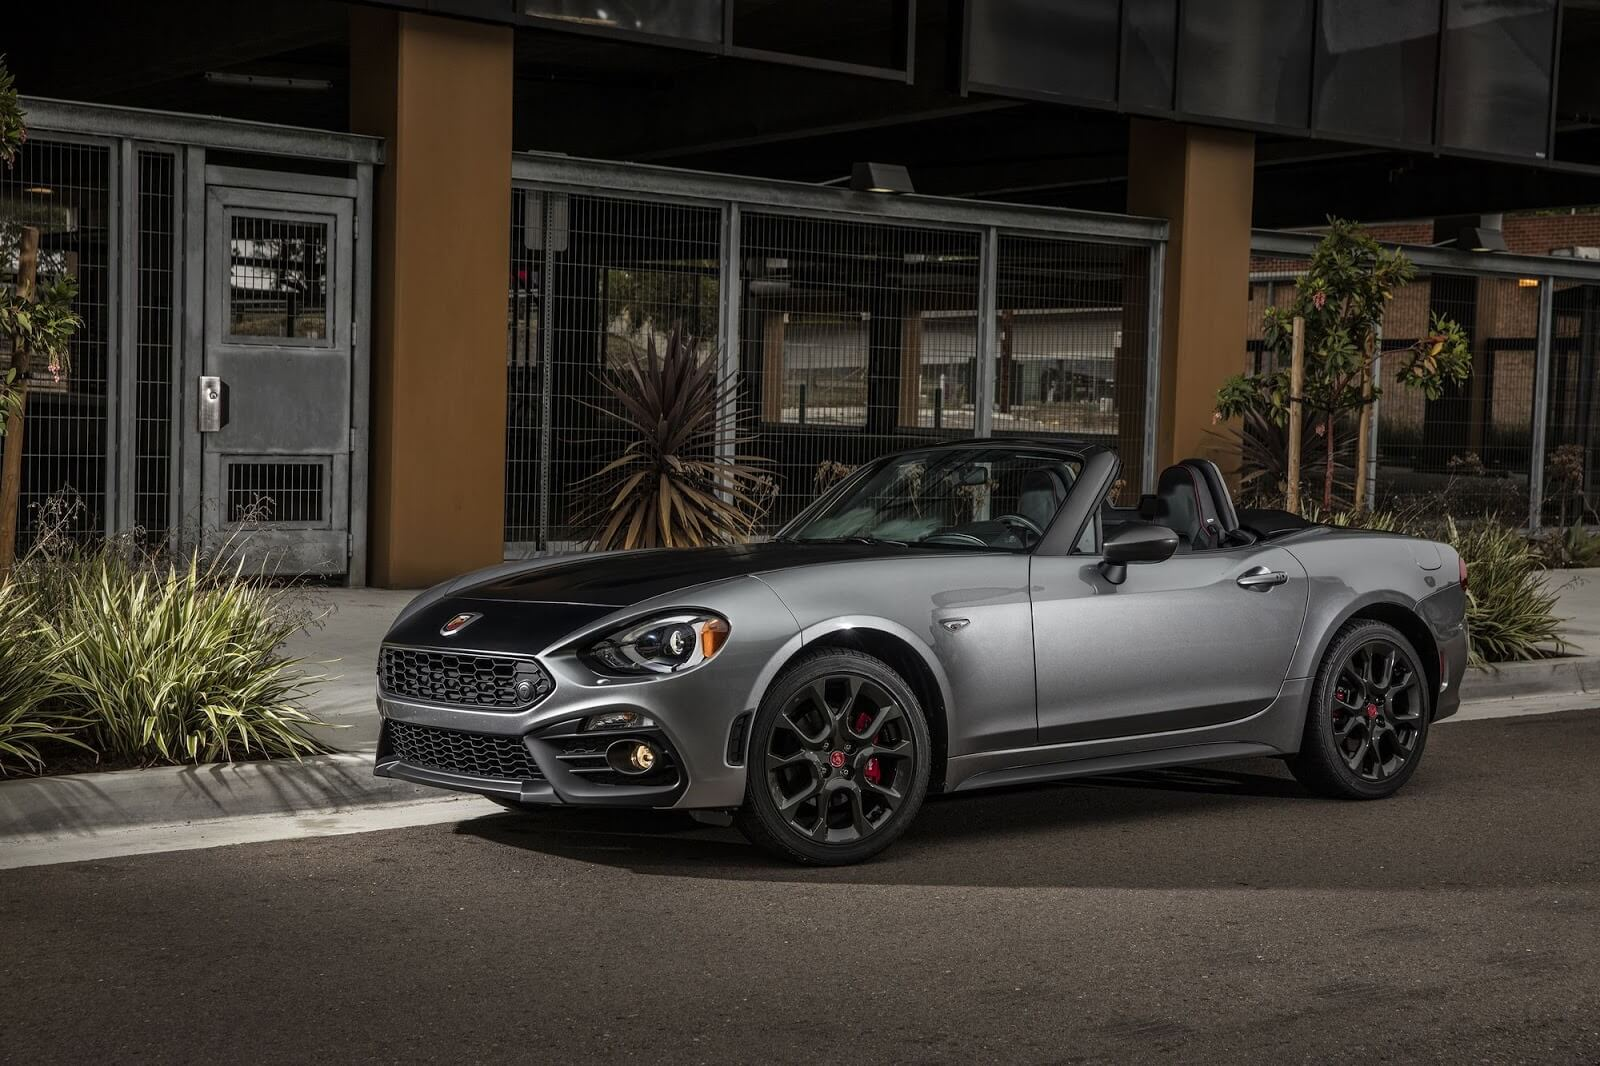 69 A 2020 Fiat Spider Redesign and Review